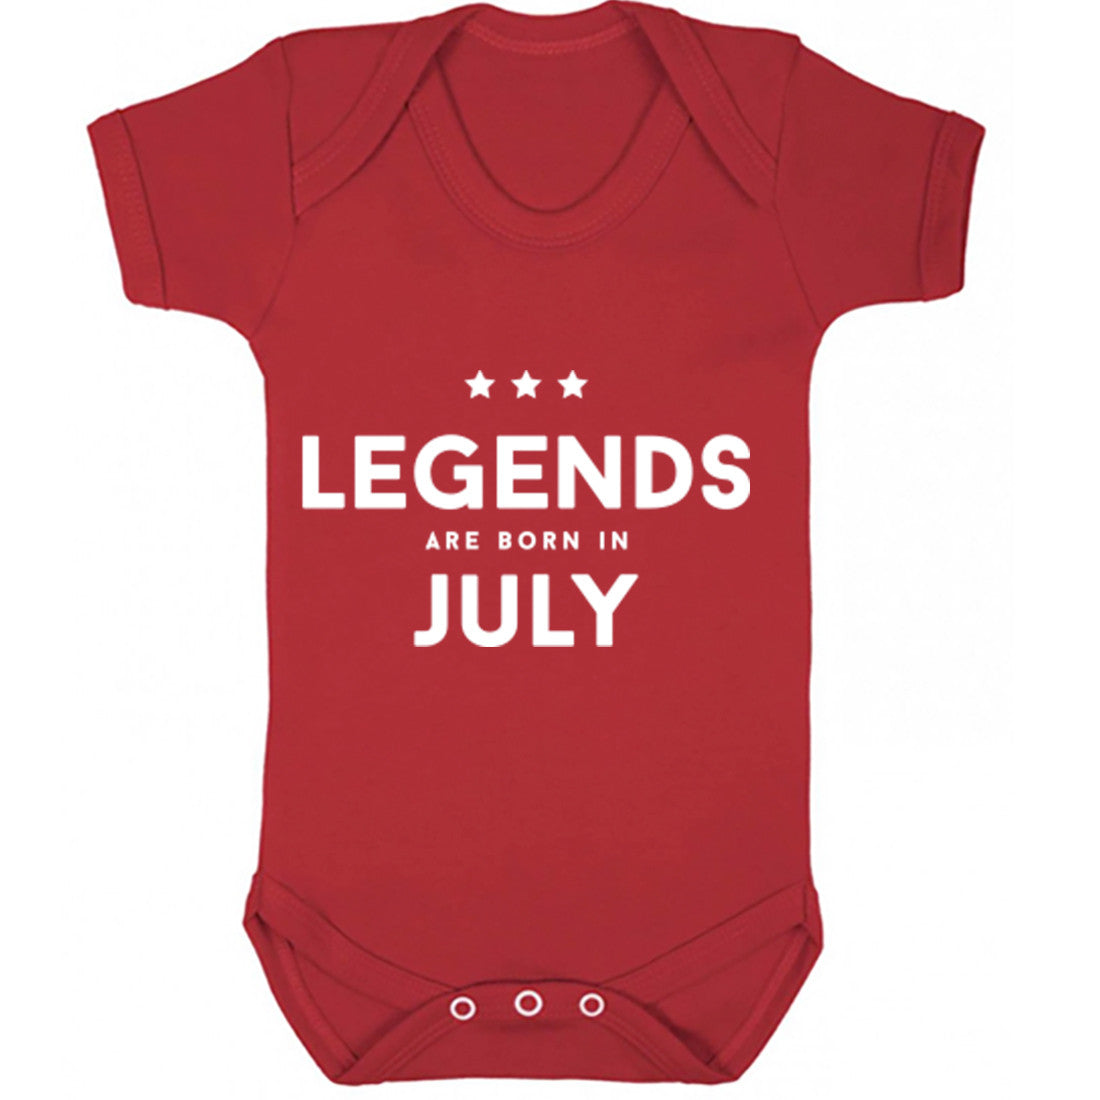 Legends Are Born In July Baby Vest K1425 - Illustrated Identity Ltd.